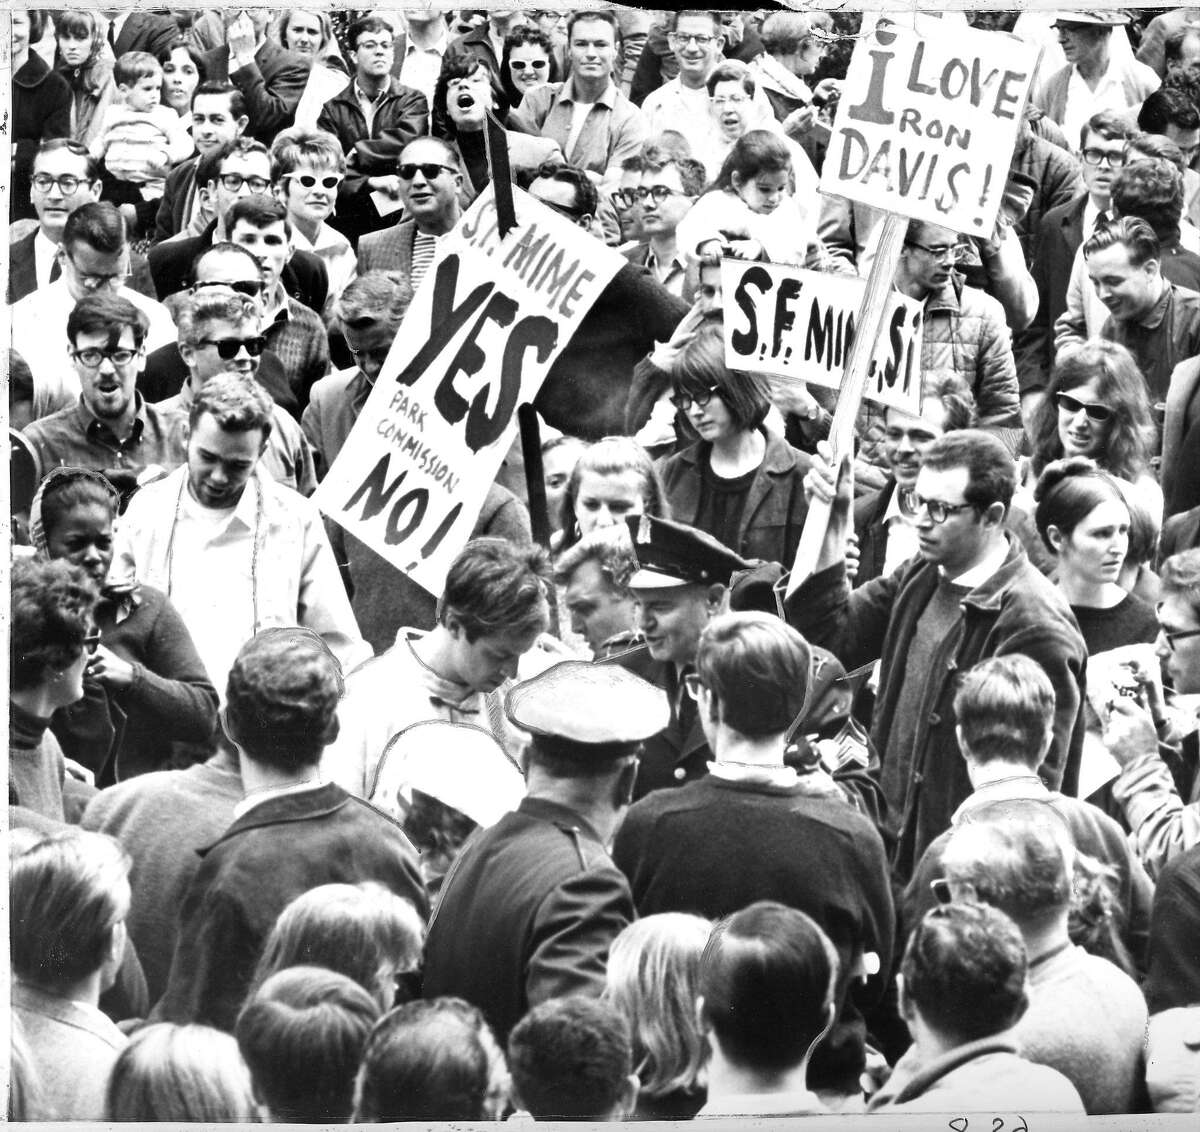 San Francisco Mime Troupe founder and director R.G. Davis (Ronald Davis) is arrested August 7, 1965, before a crowd of 1,000 that turned out to support the performance.